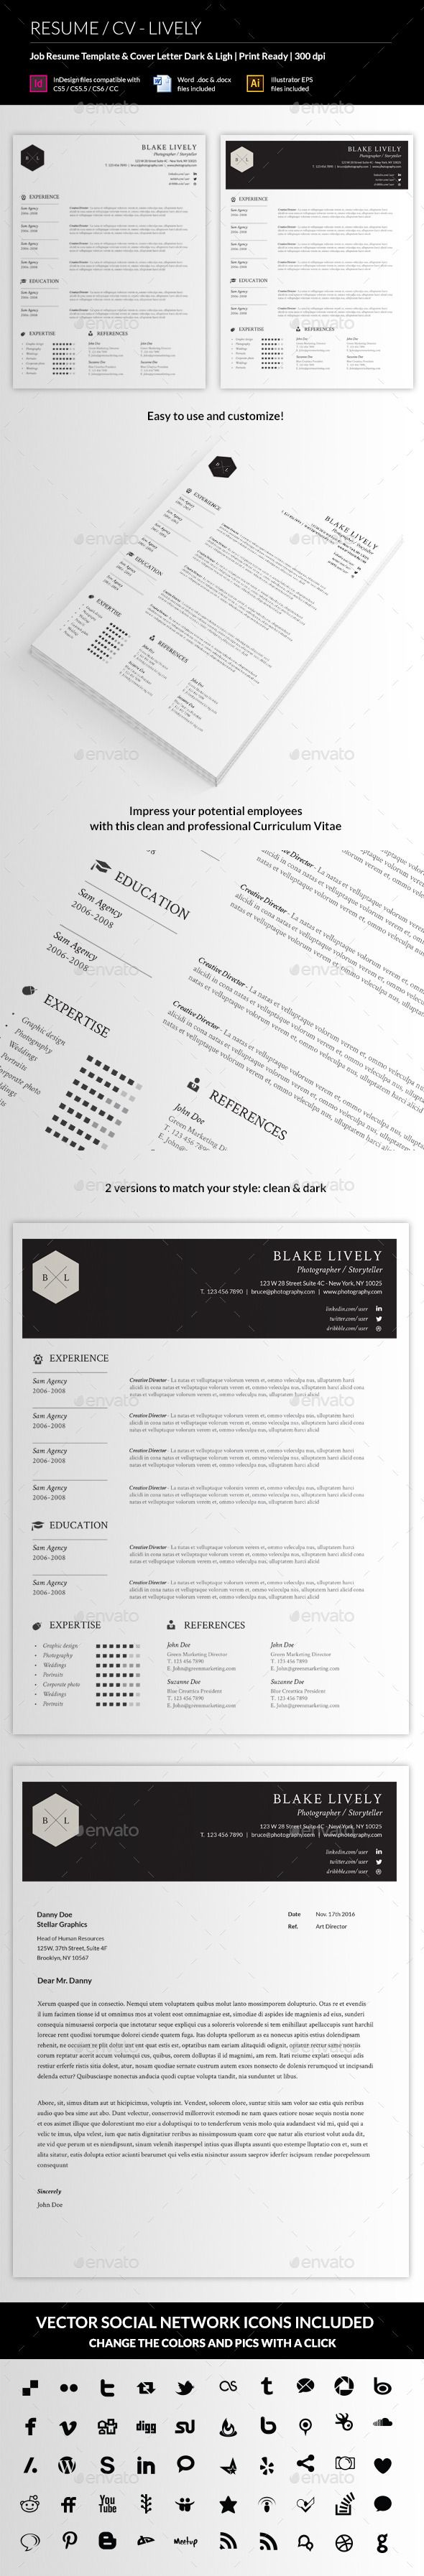 ResumeCv  Lively  Resume Cv Simple Resume And Cv Template